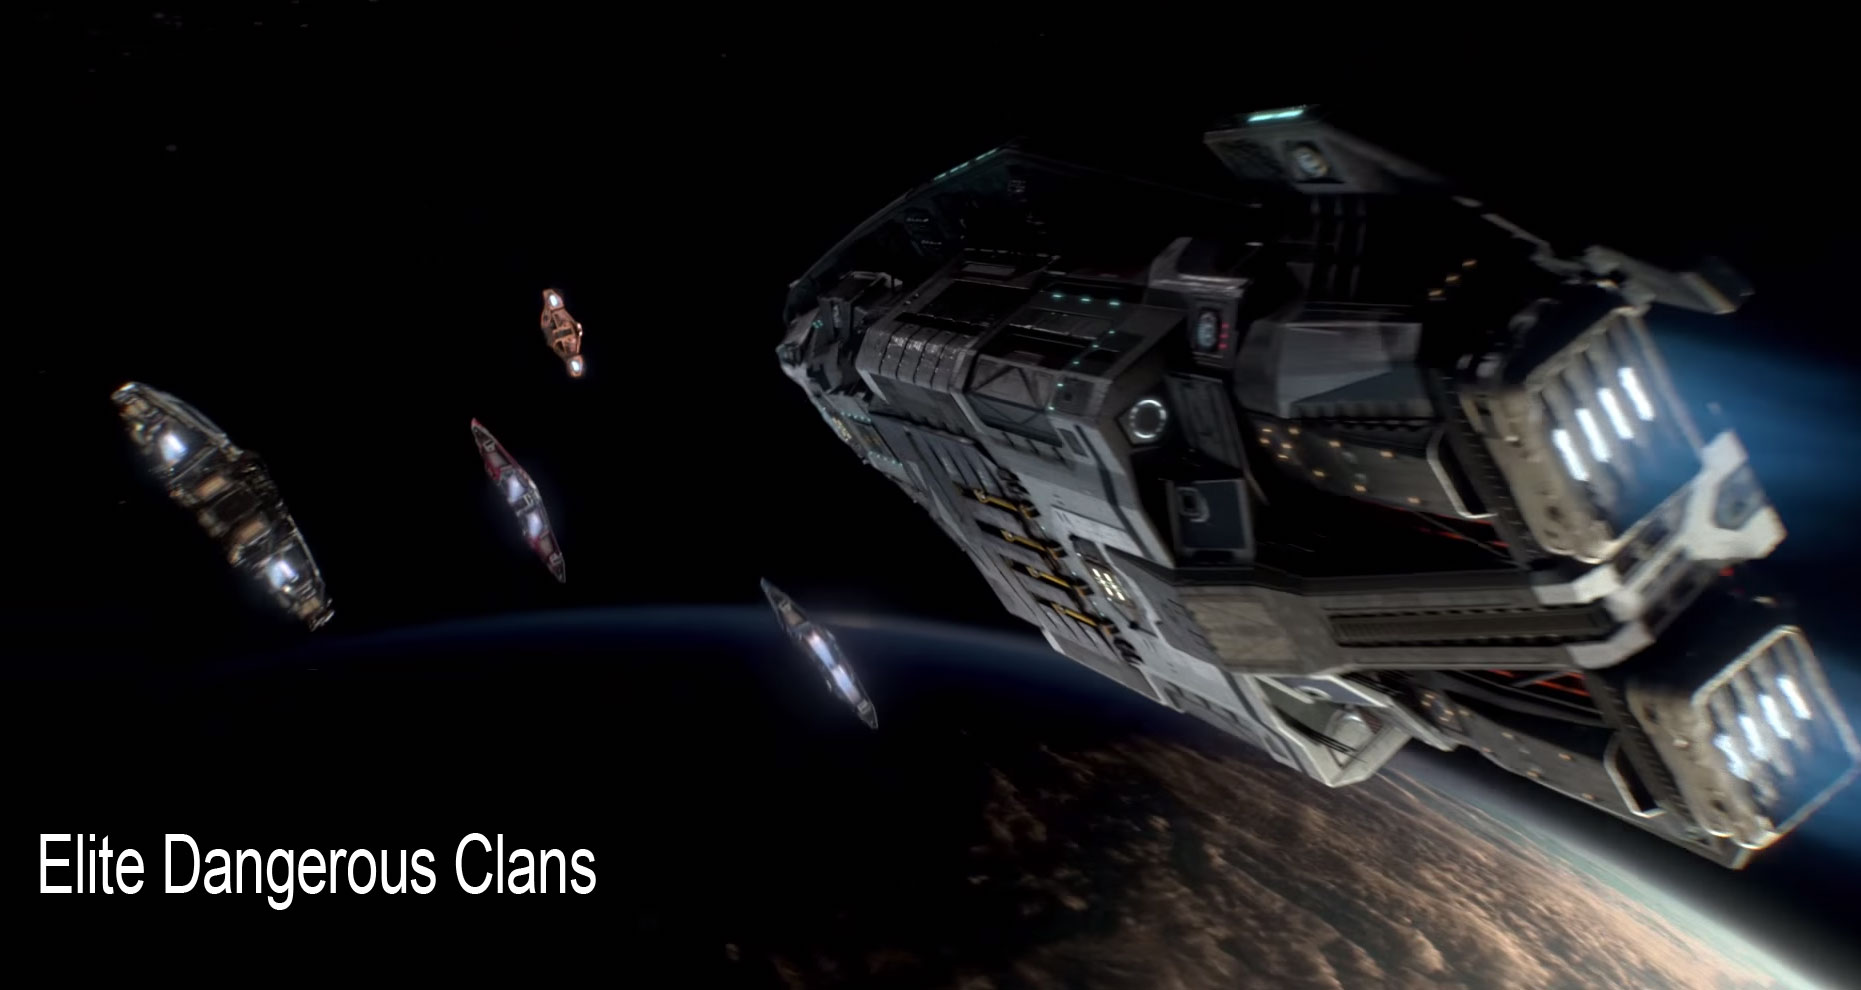 Elite Dangerous Clans